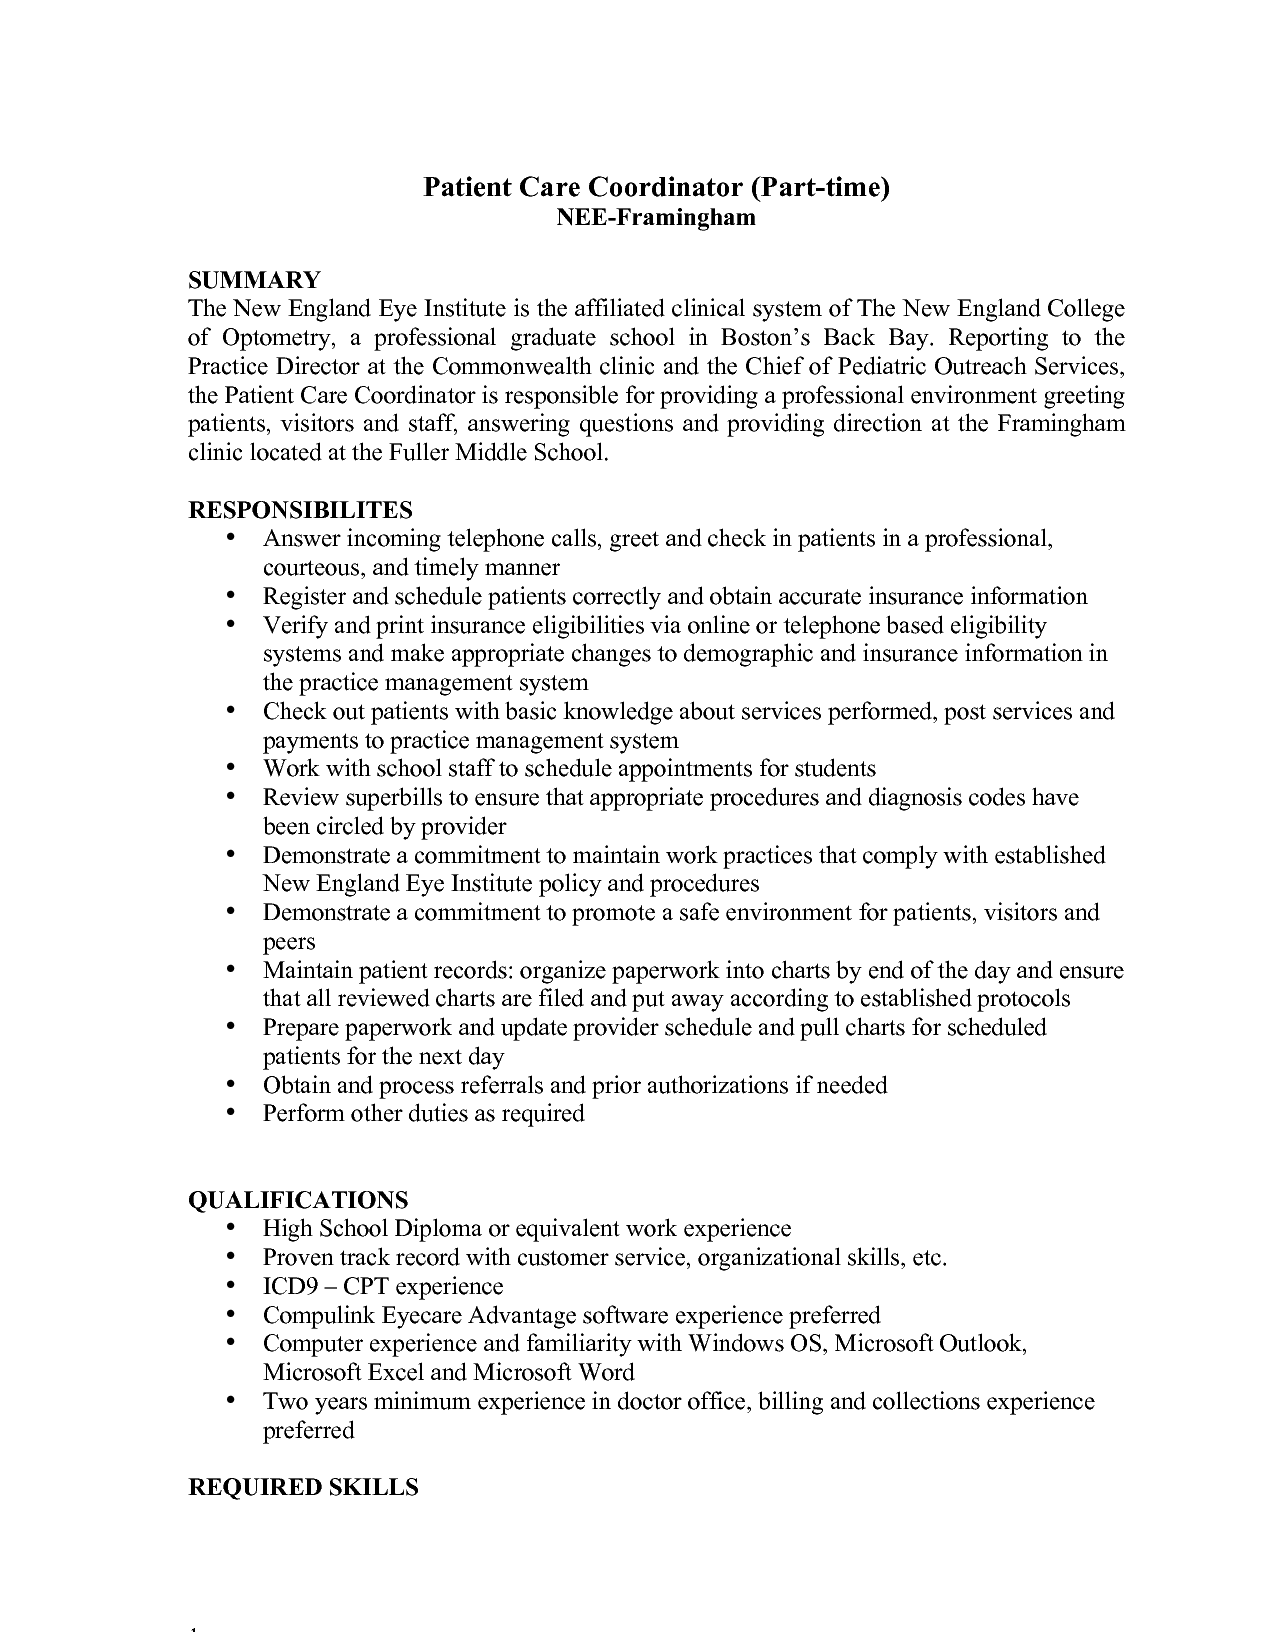 2016 patient care coordinator resume sample samplebusinessresume patient care coordinator resume summary and responsibilities